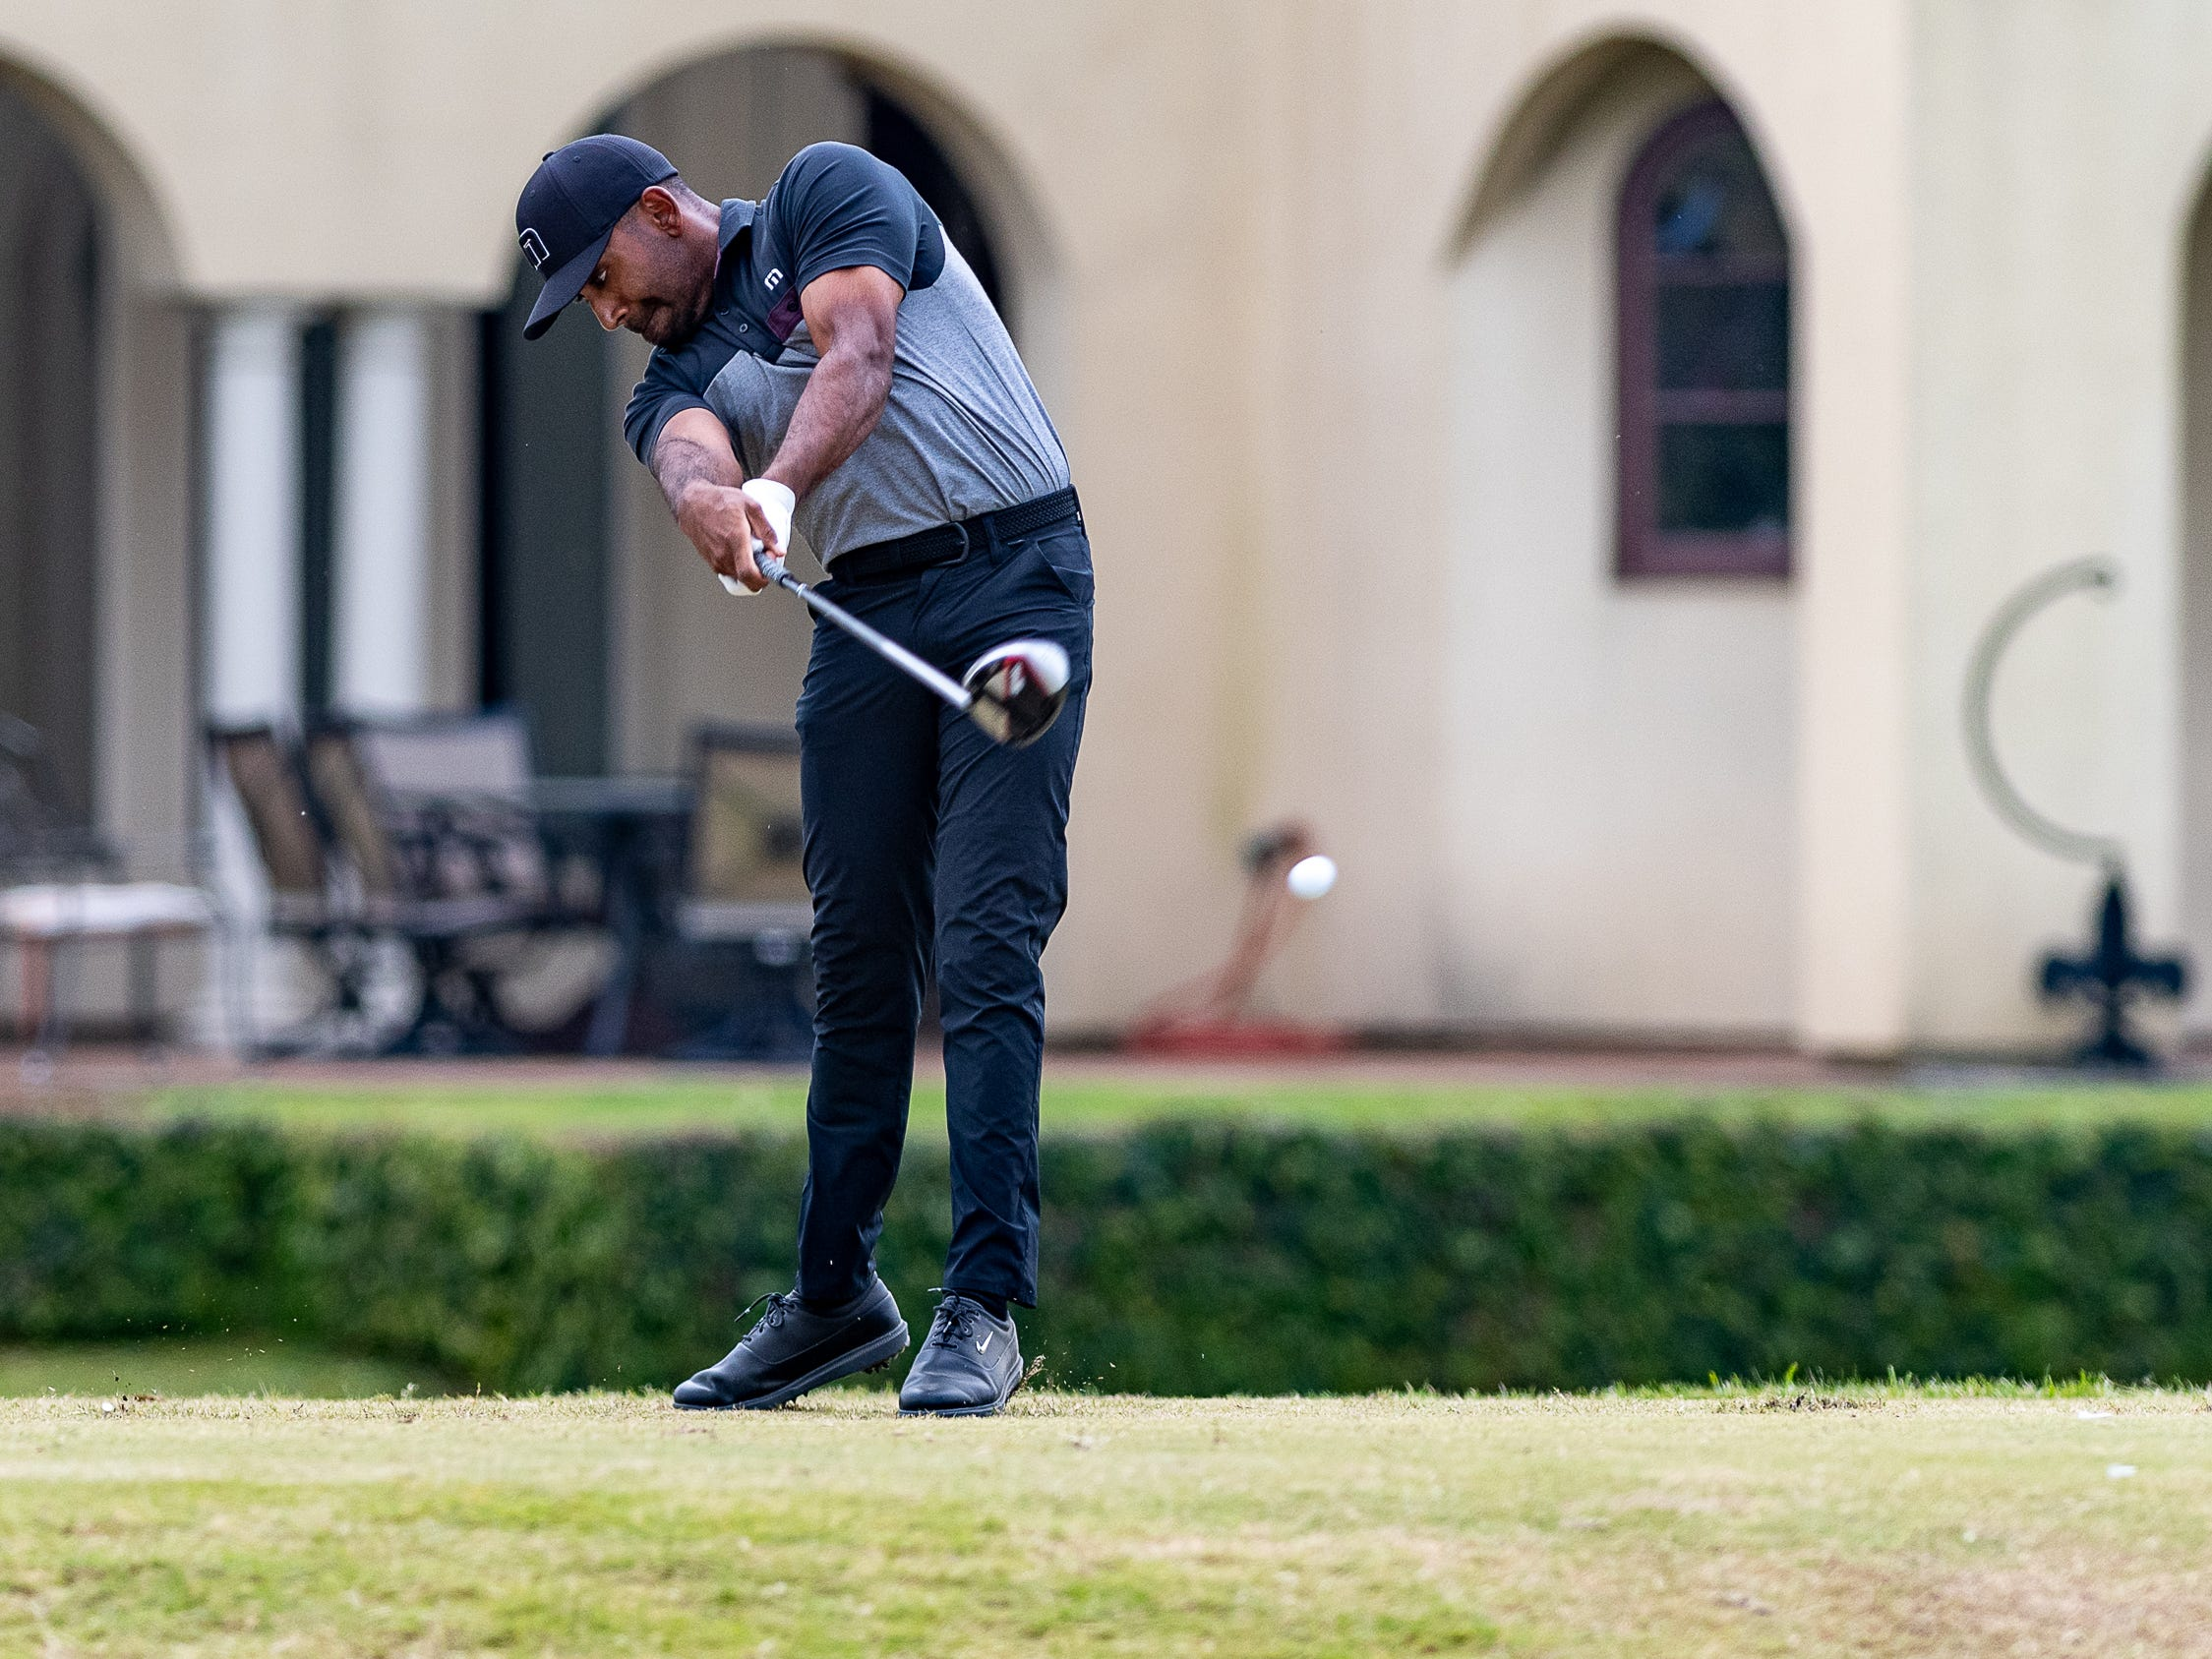 Bhavik Patel hits tee shot during the final round of the Web.com 2019 Chitimacha Louisiana Open presented by Mistras at Le Triomphe. Sunday, March 24, 2019.